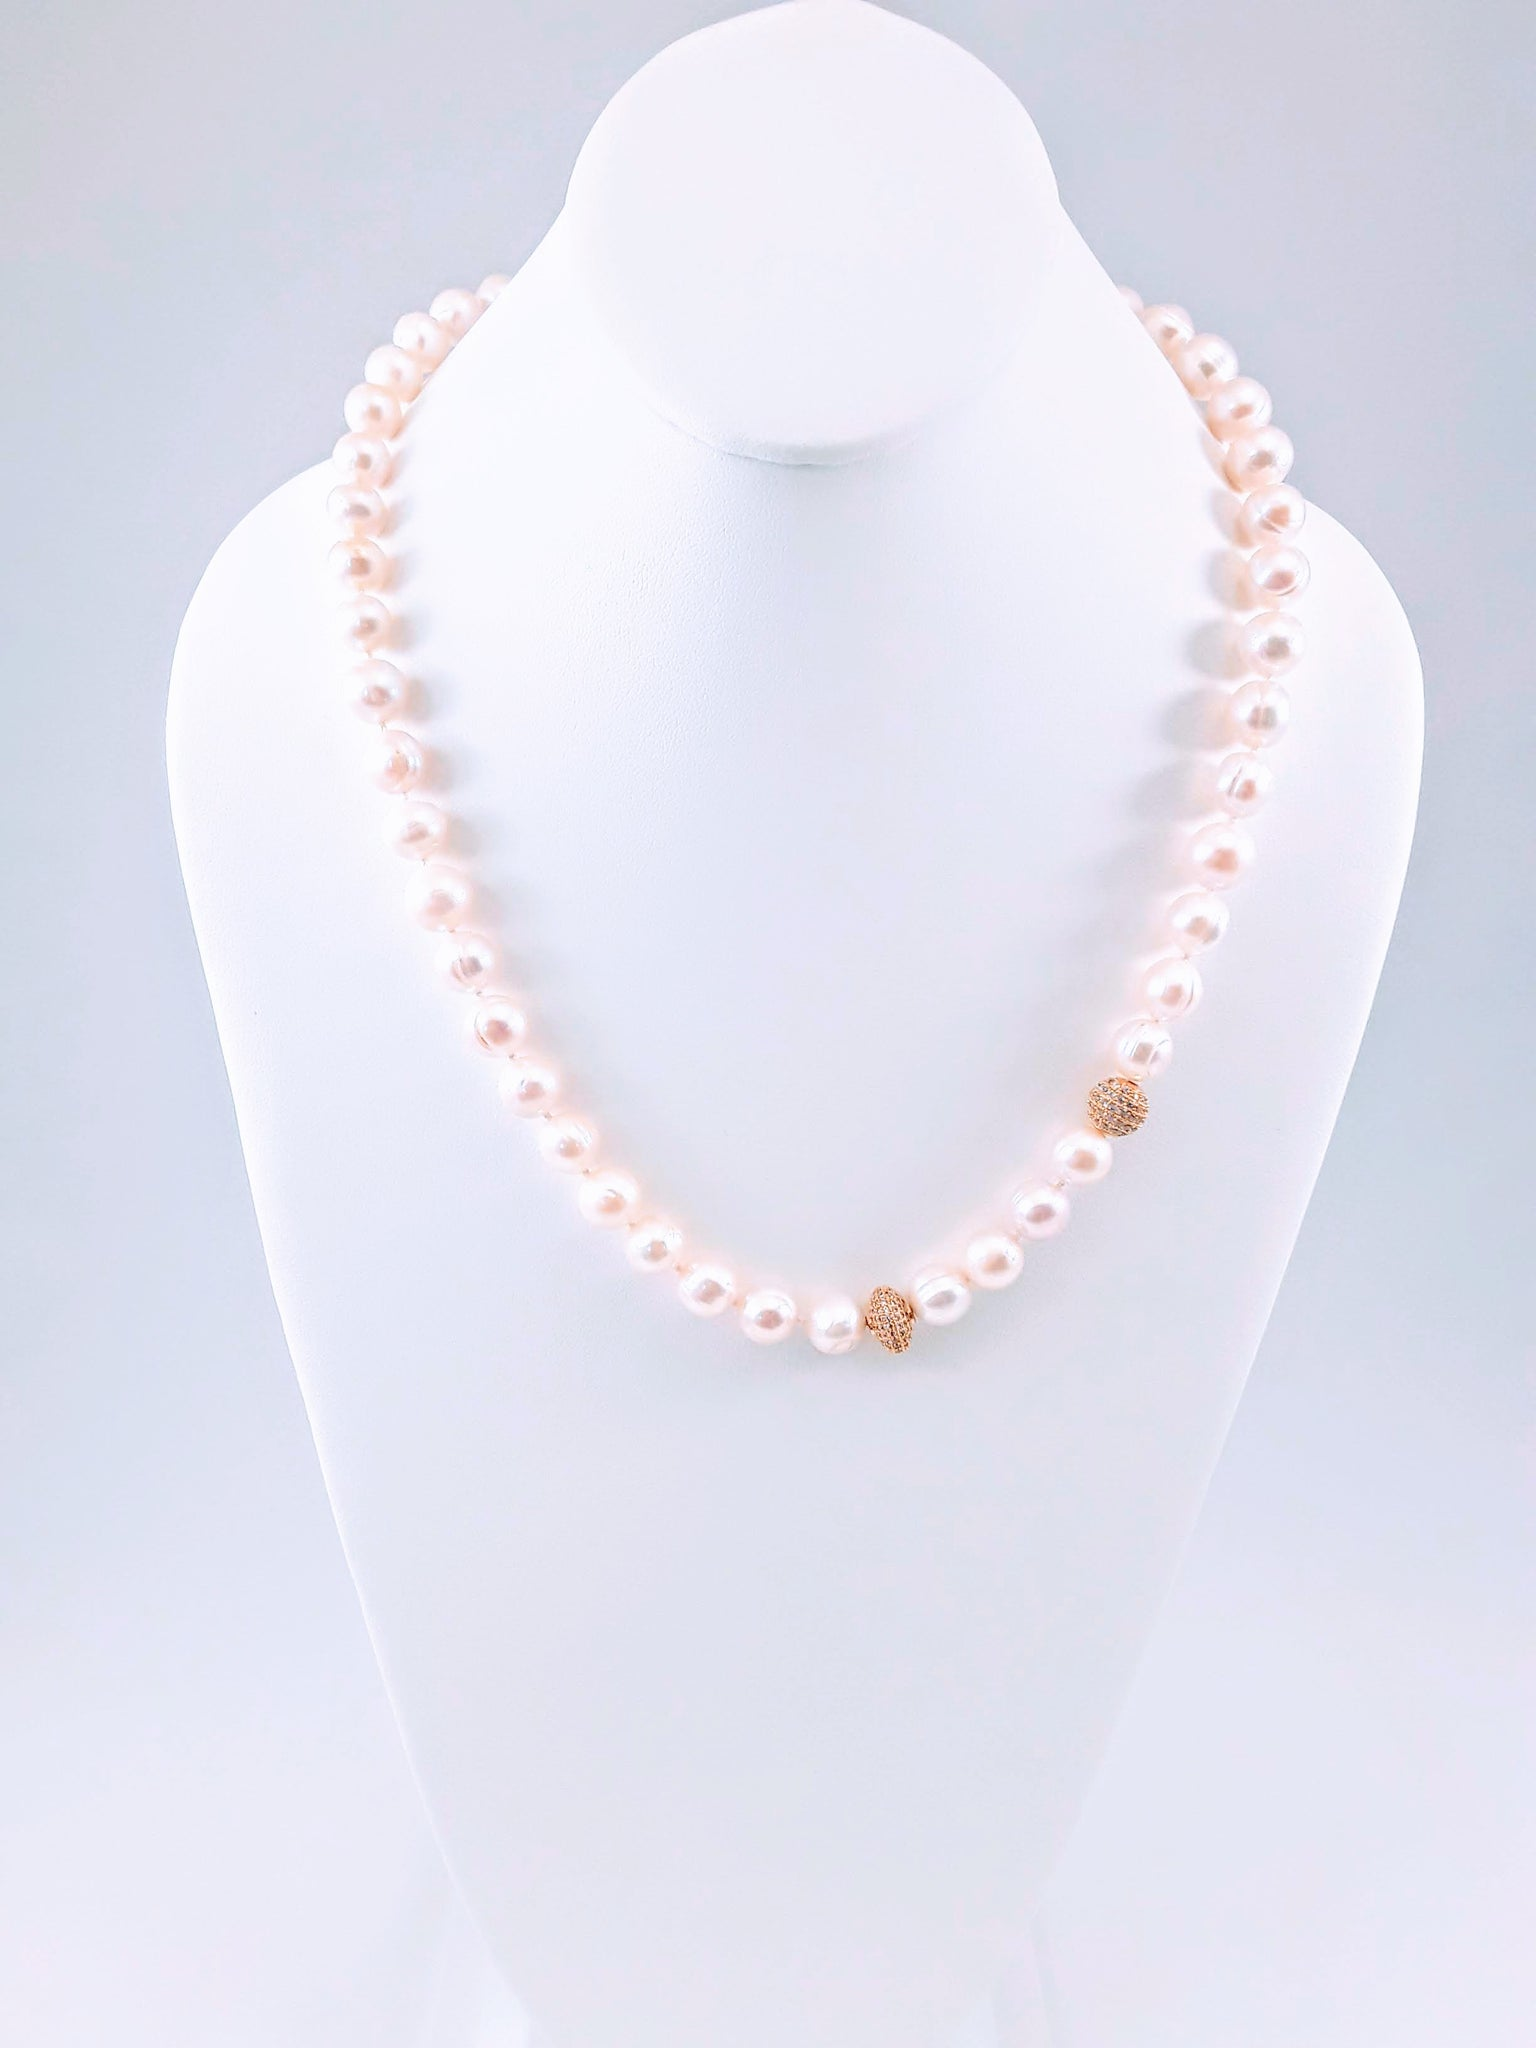 The Classic Knotted Pearl